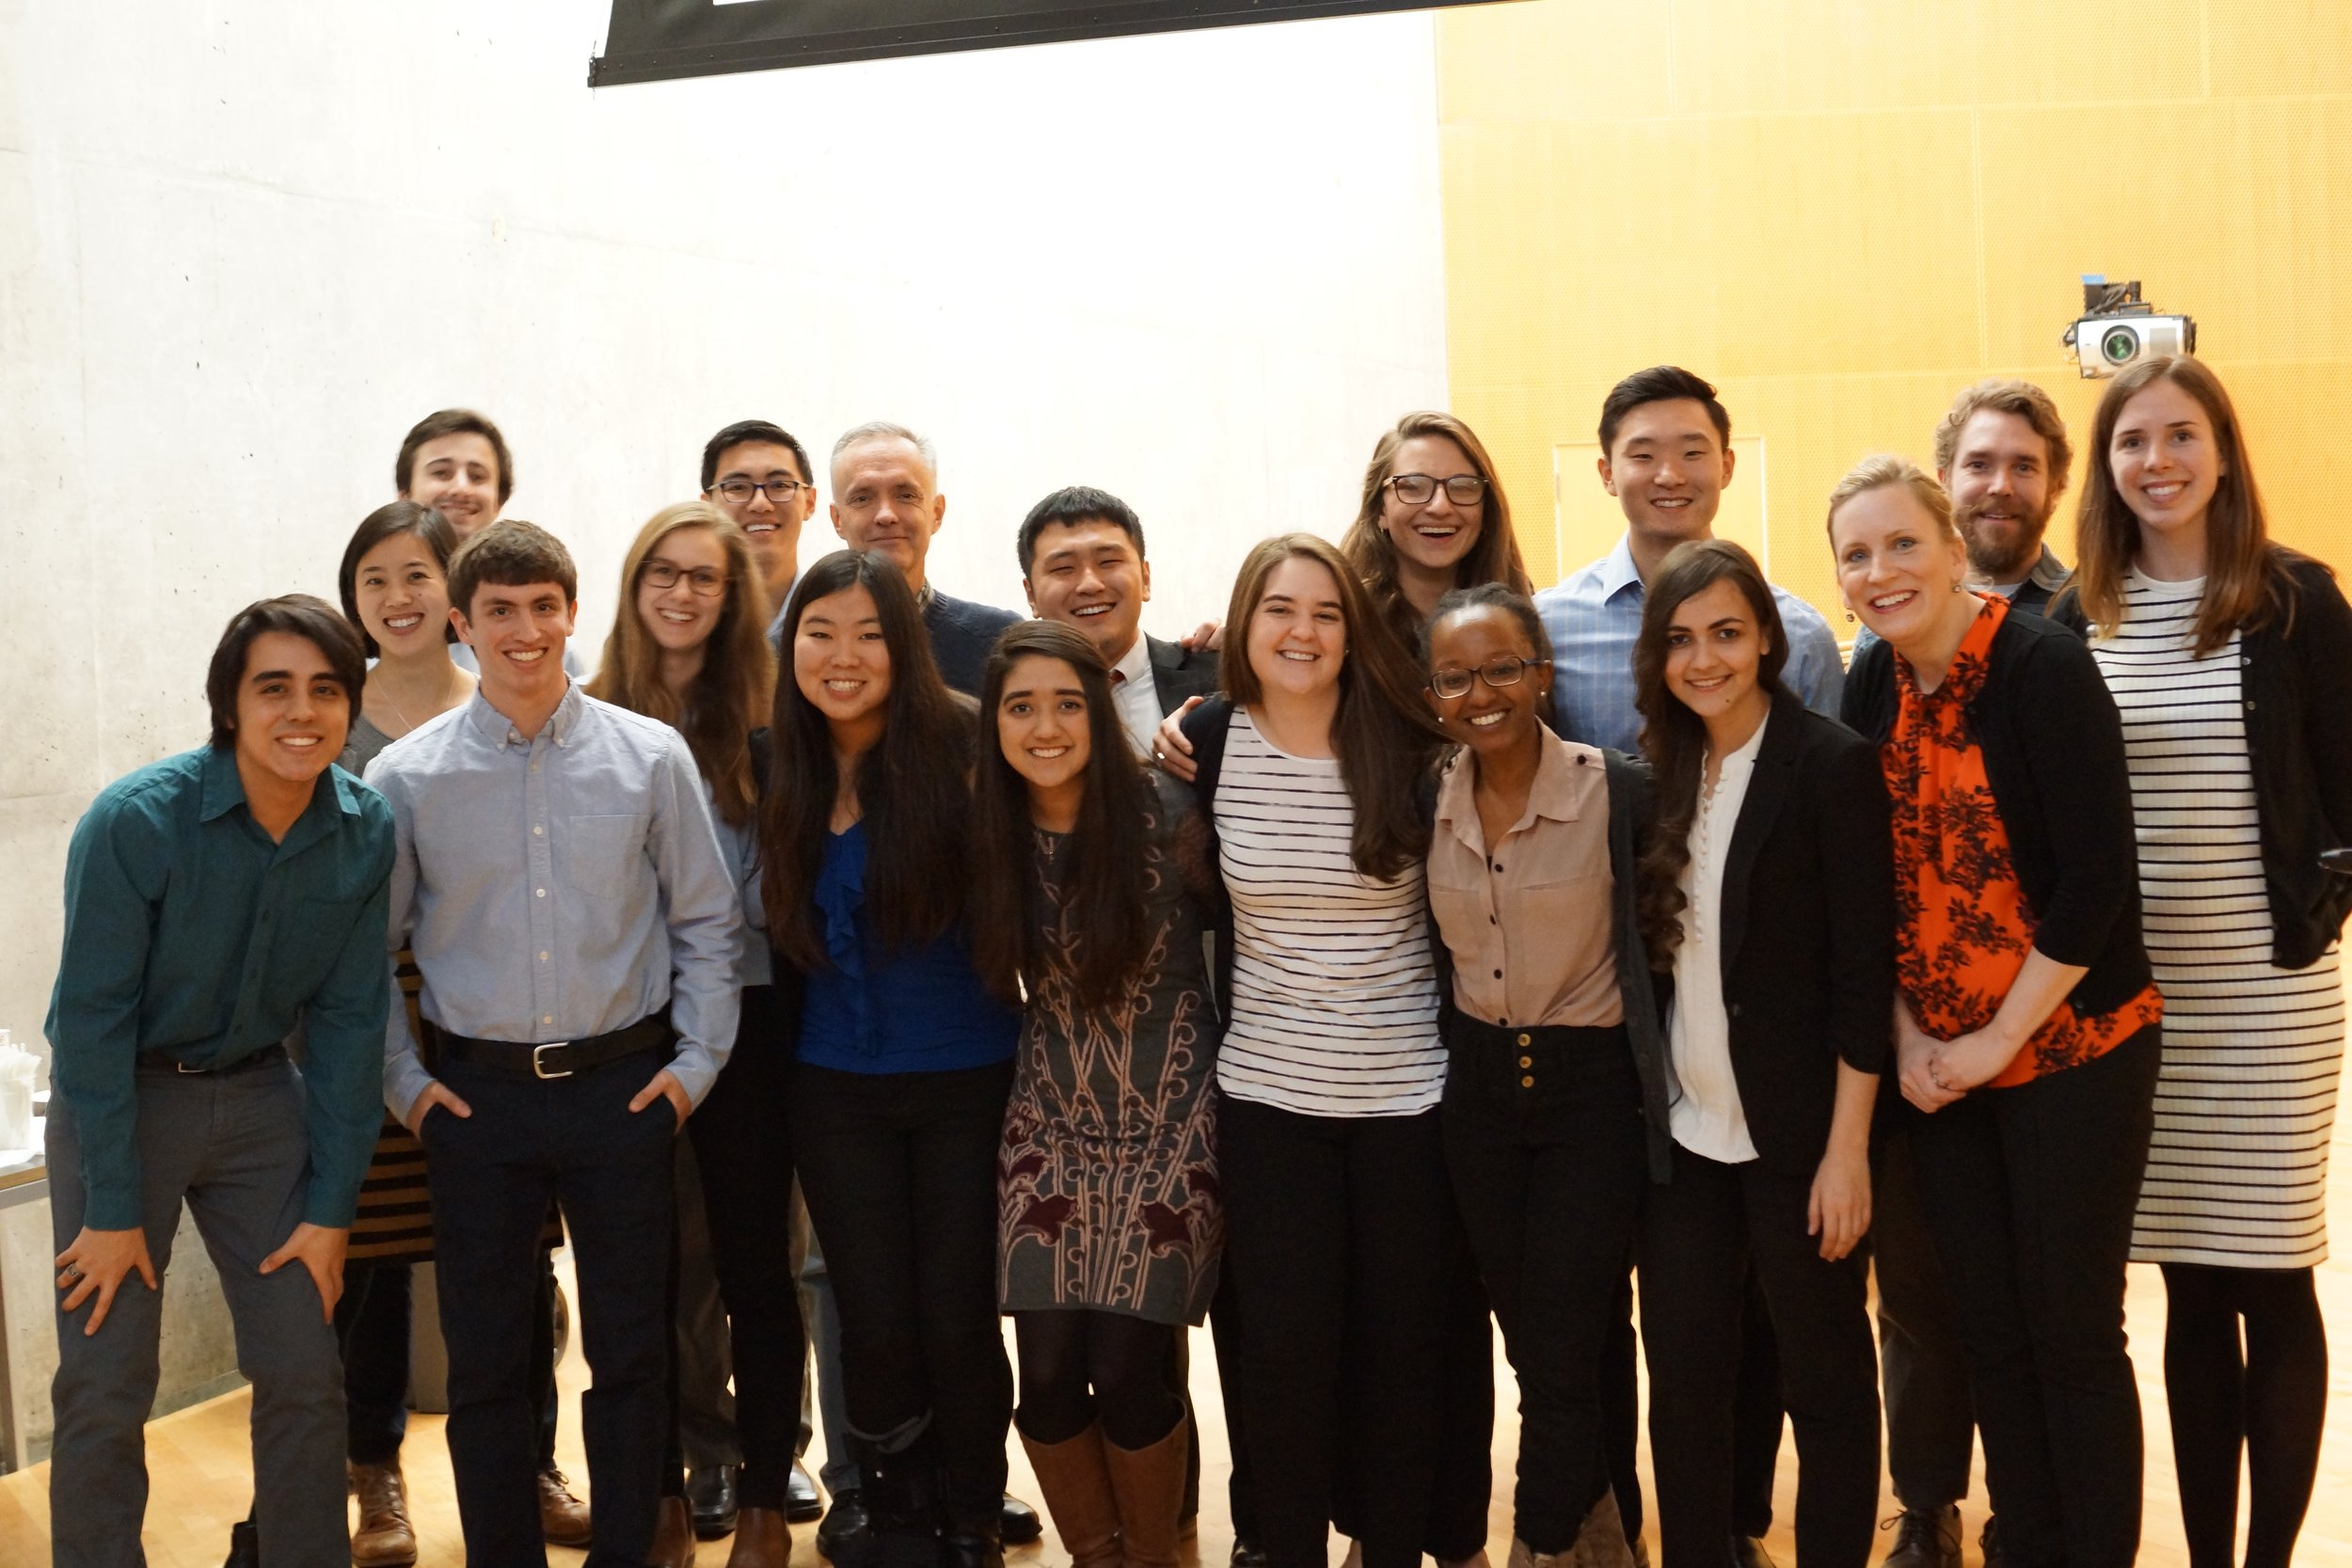 Dr. Koehler and phd Candidate Shelby Doyle (far right) with the students of 20.380, pRofessor Jim Collins, and teaching staff from the MIT Communication Lab at the fall 2016 final pitch competition.